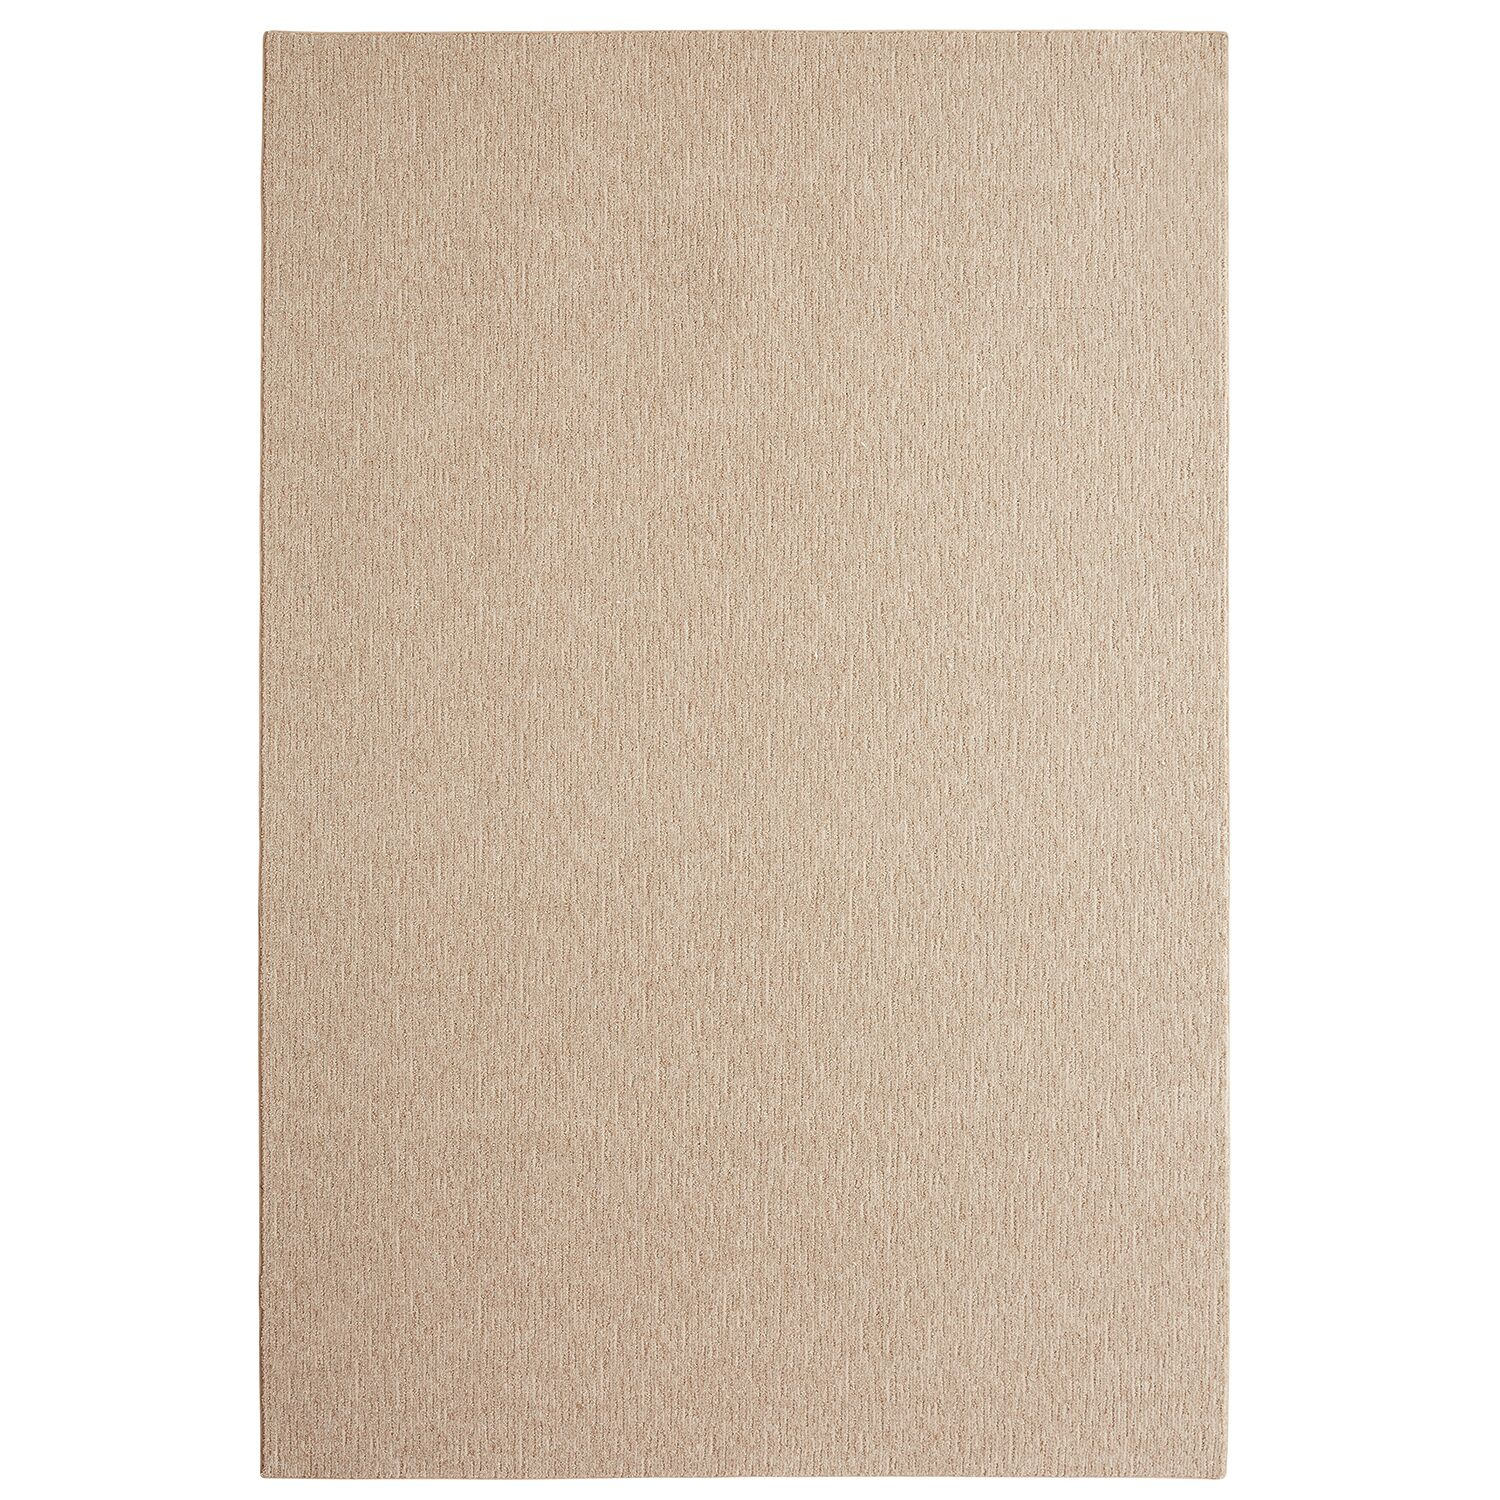 Bettie Hand-Tufted Taupe Area Rug Rug Size: Rectangle 6' x 9'